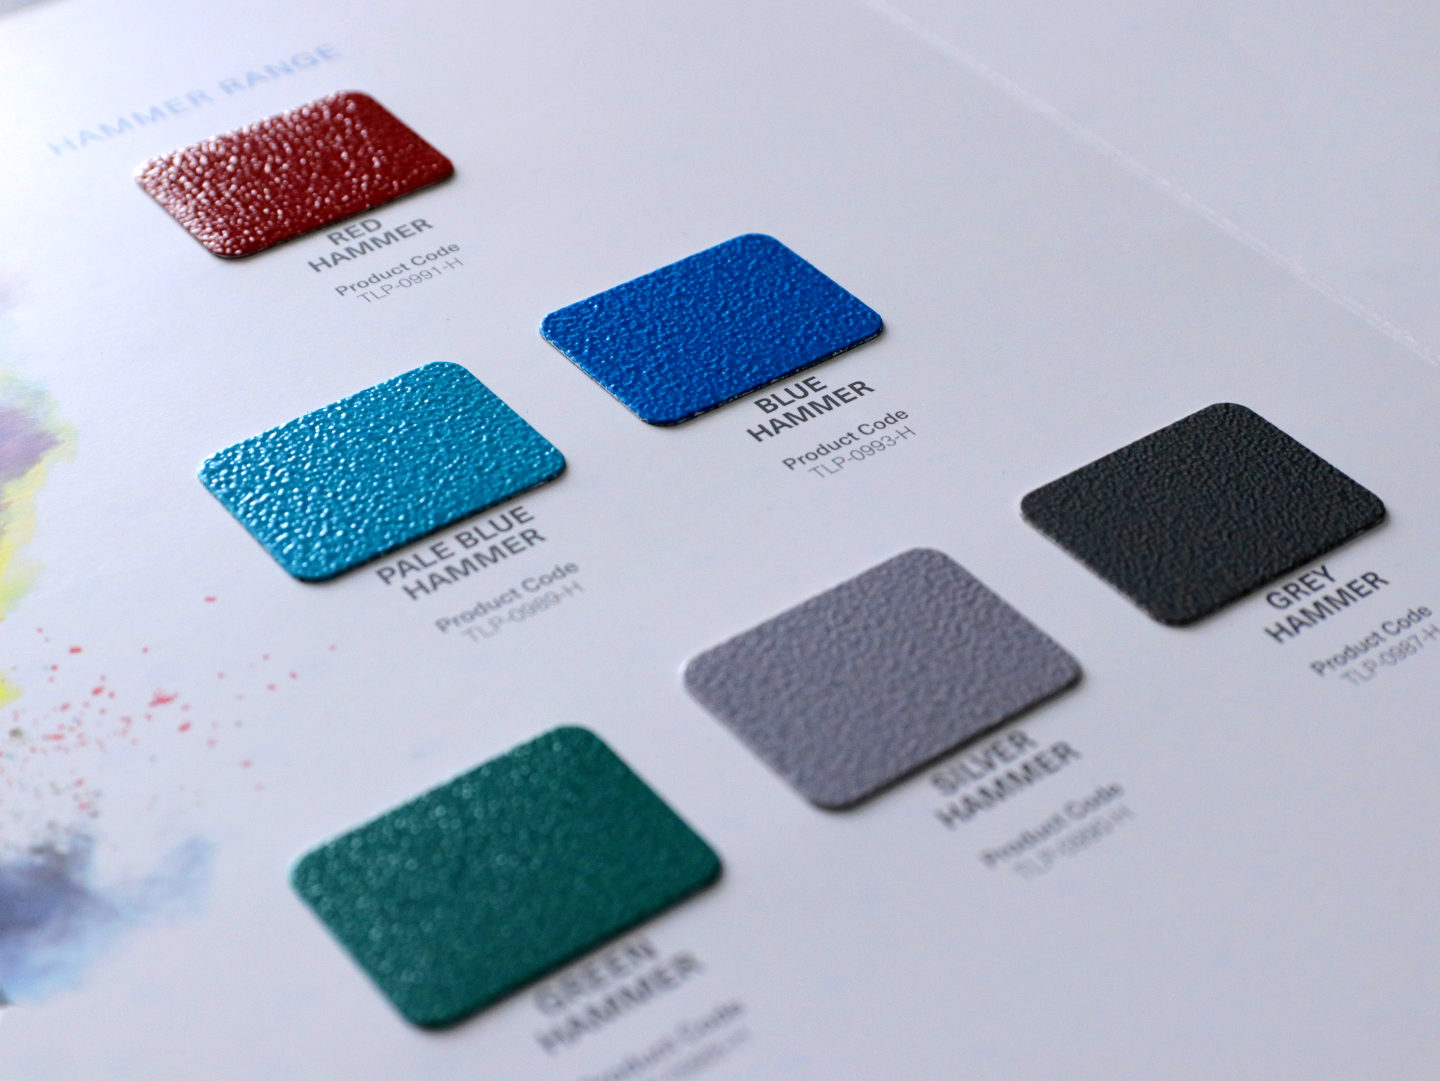 hammer_powder_coatings